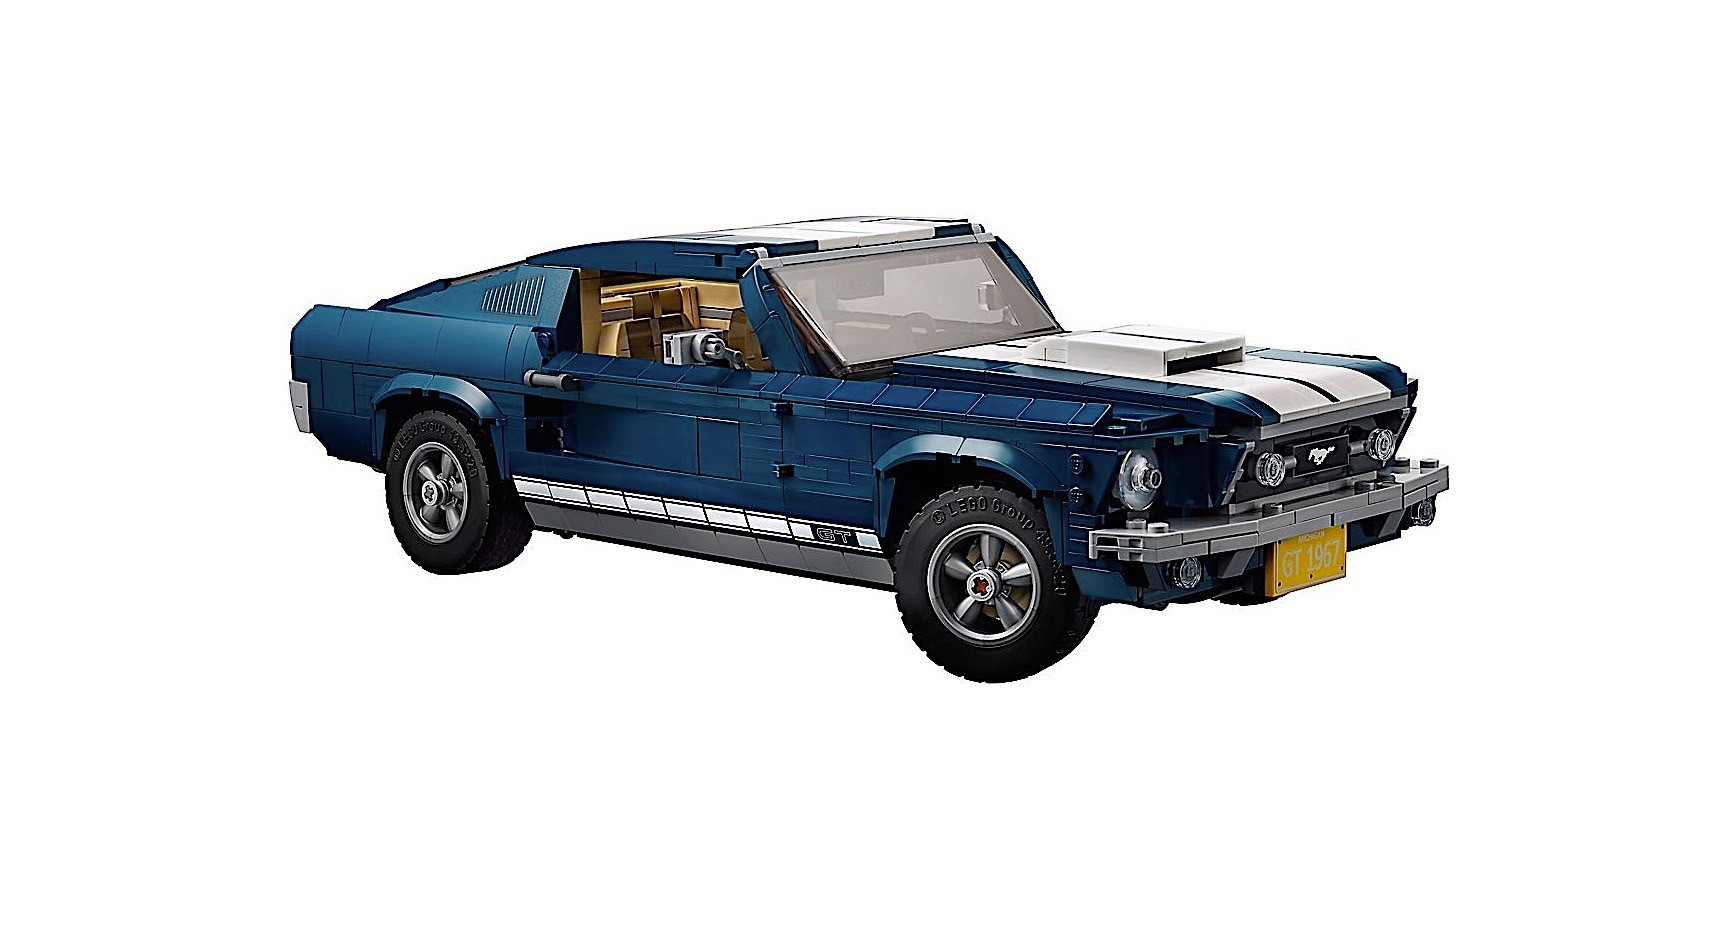 1967-ford-mustang-fastback-now-available-as-1470-piece-lego-set_3